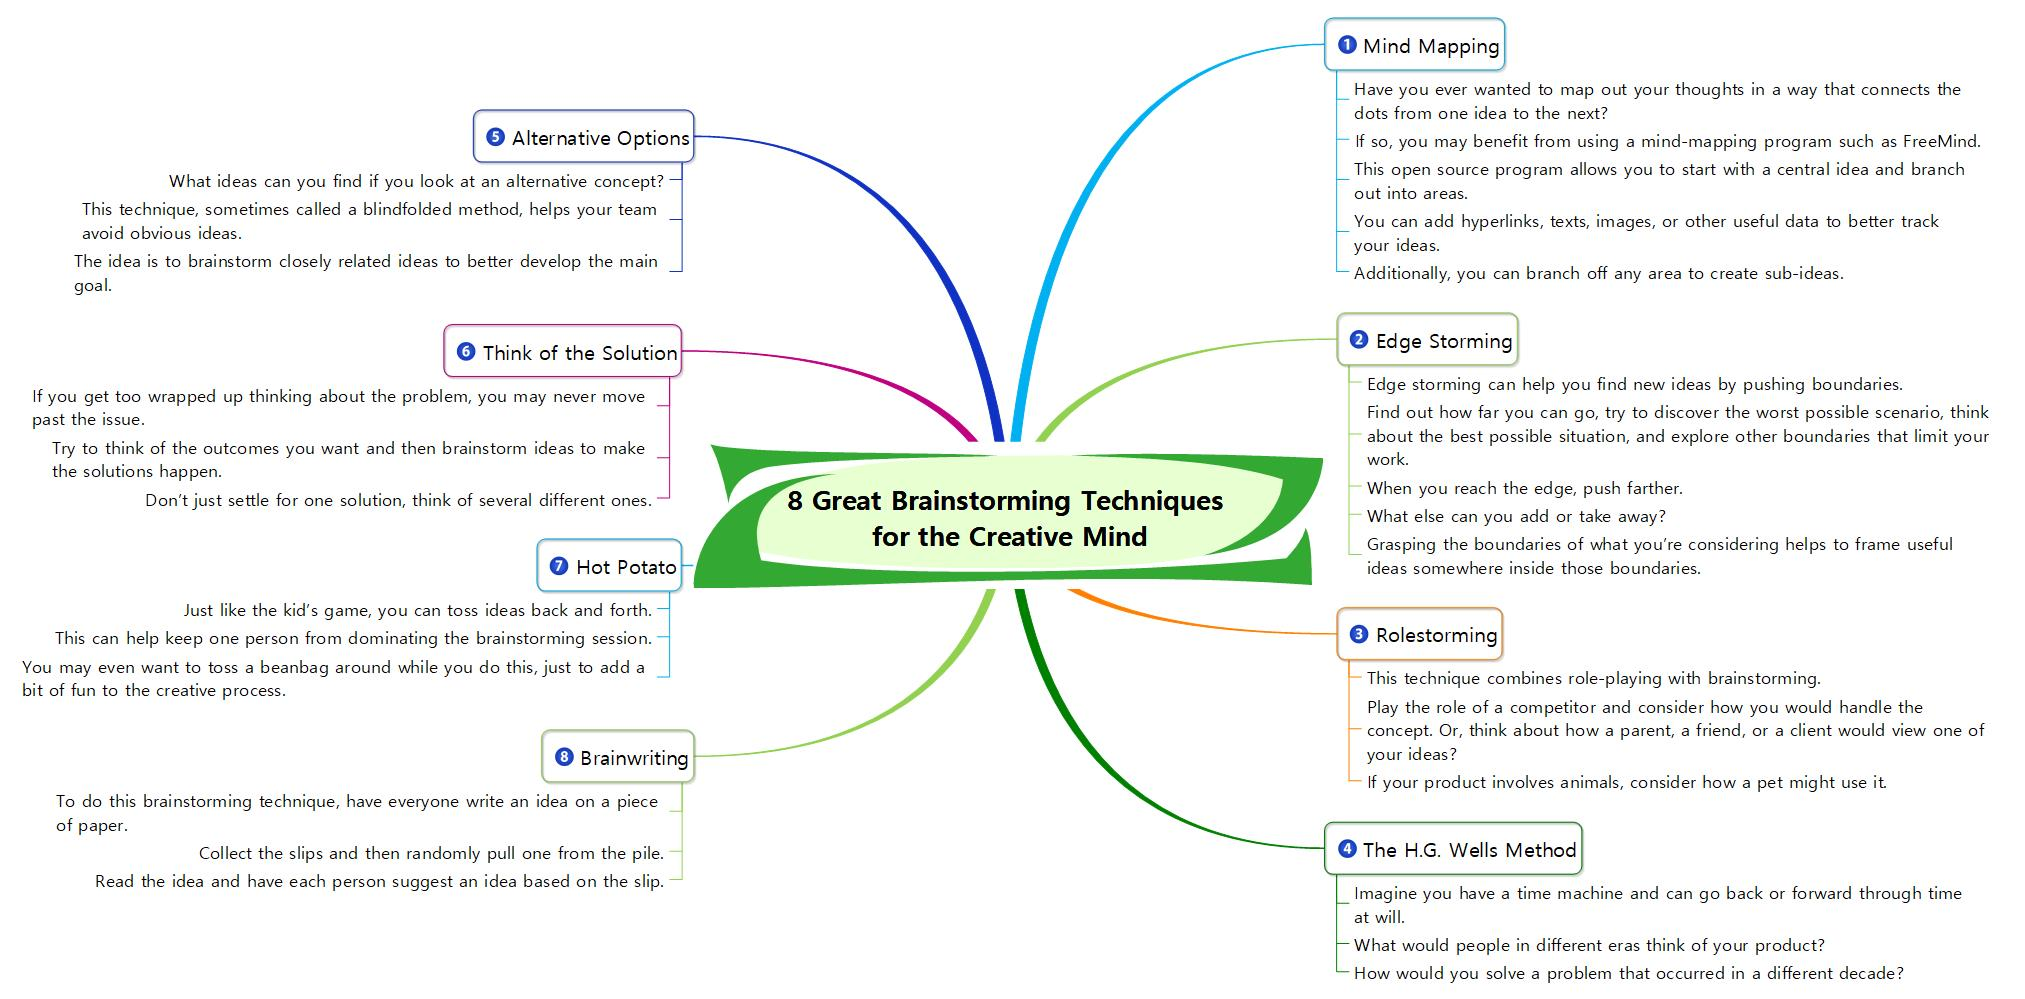 8 Great Brainstorming Techniques  for the Creative Mind 이미지